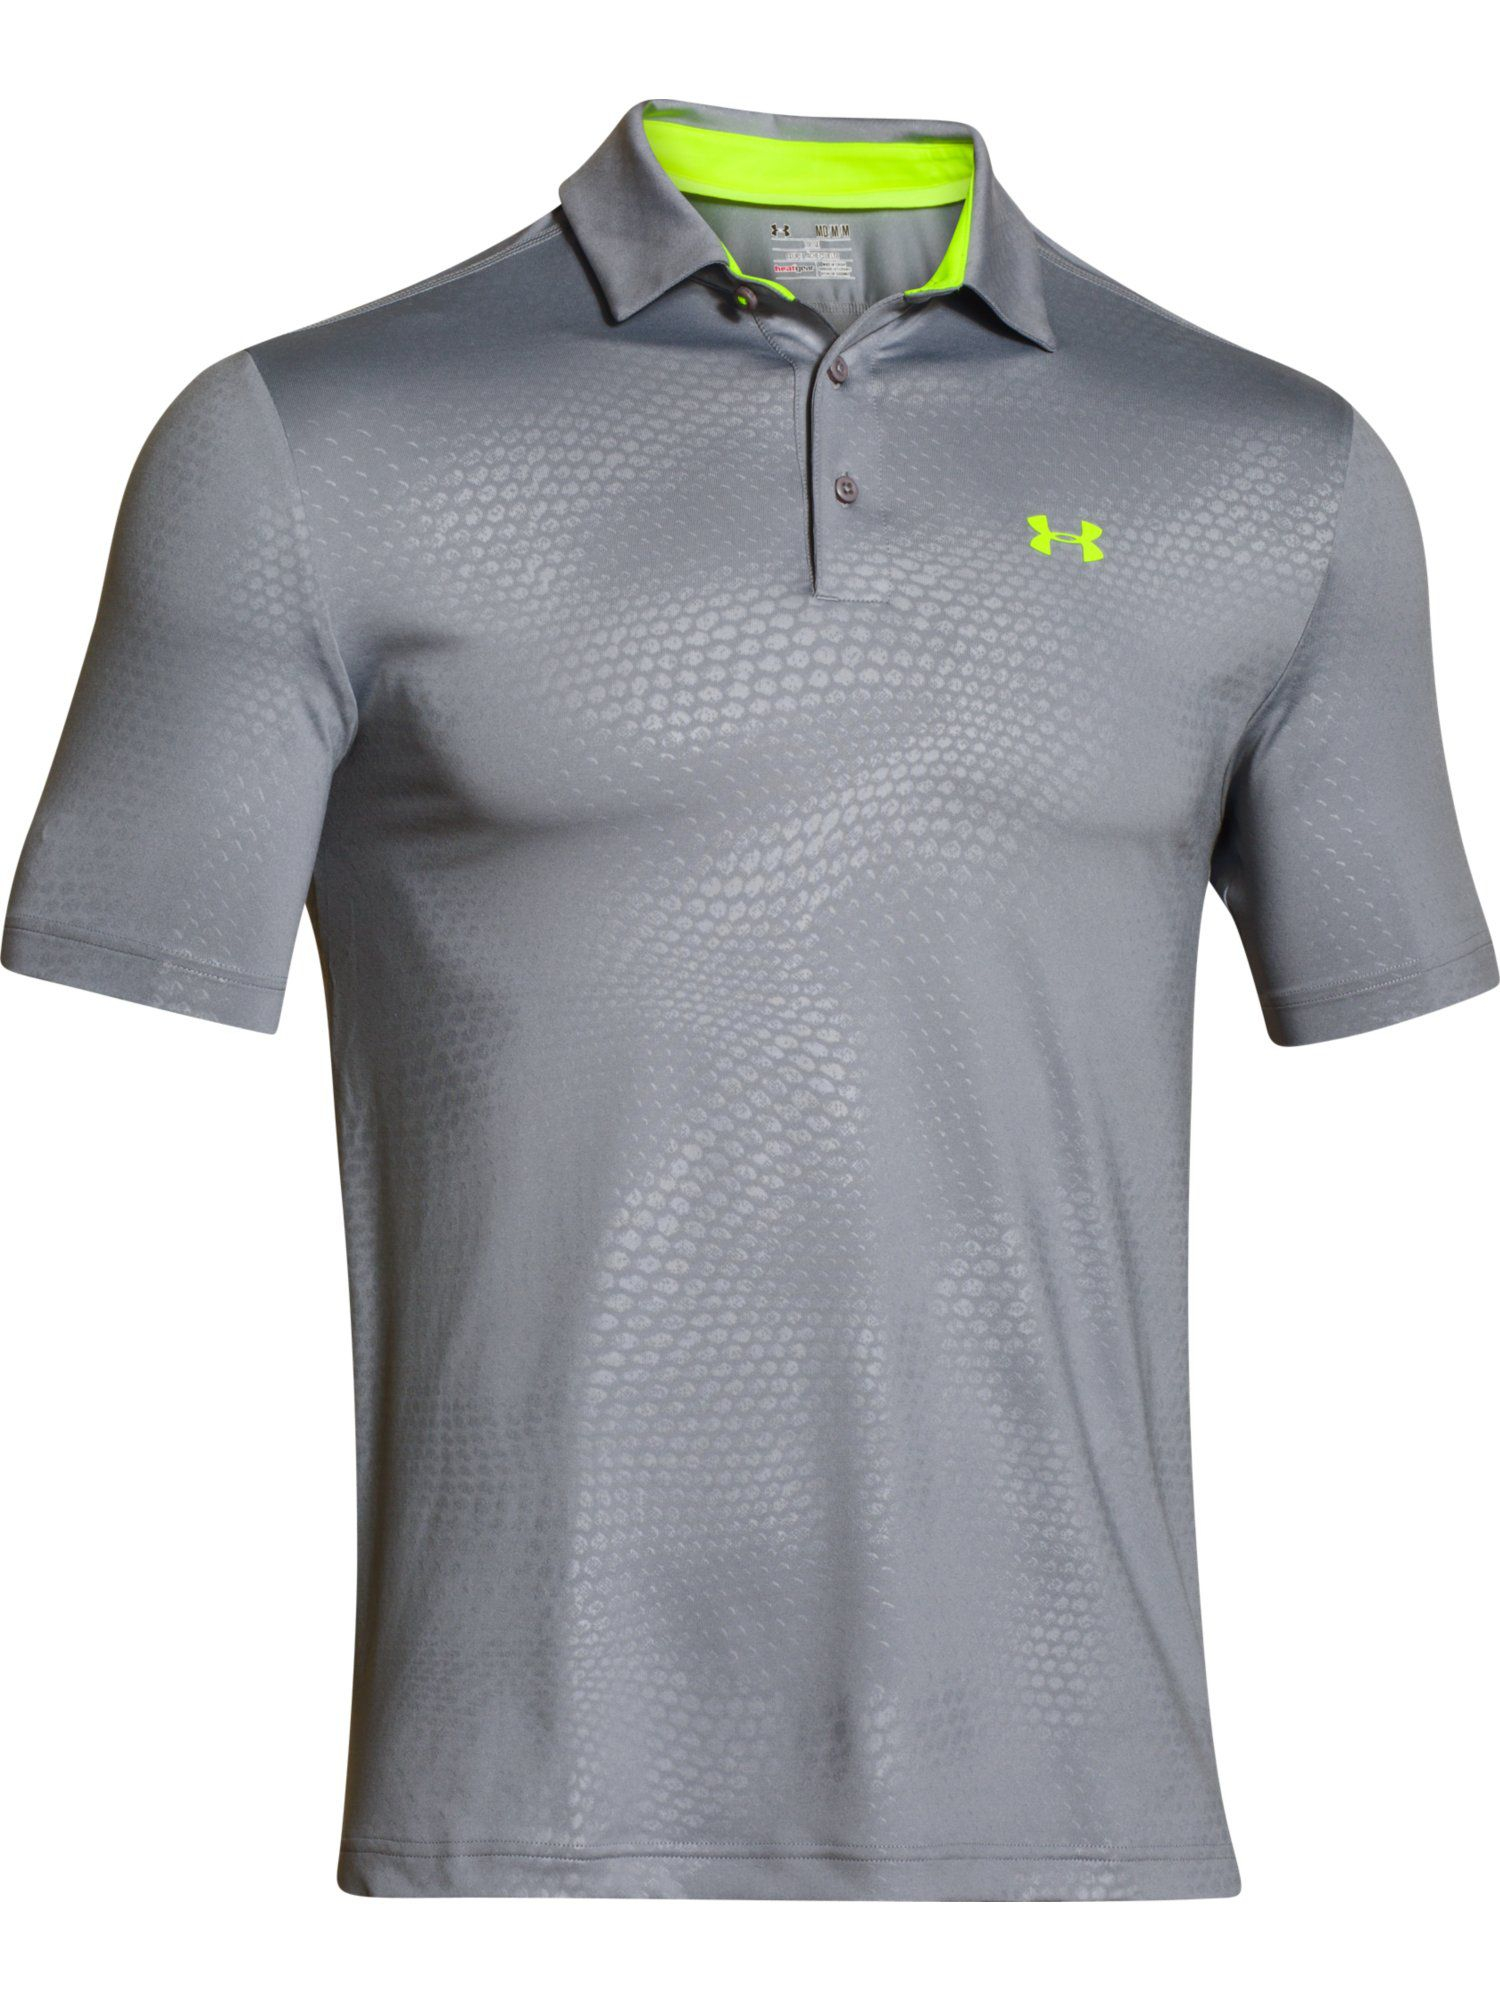 Under Armour Playoff Rattled Textured Polo Shirt In Gray